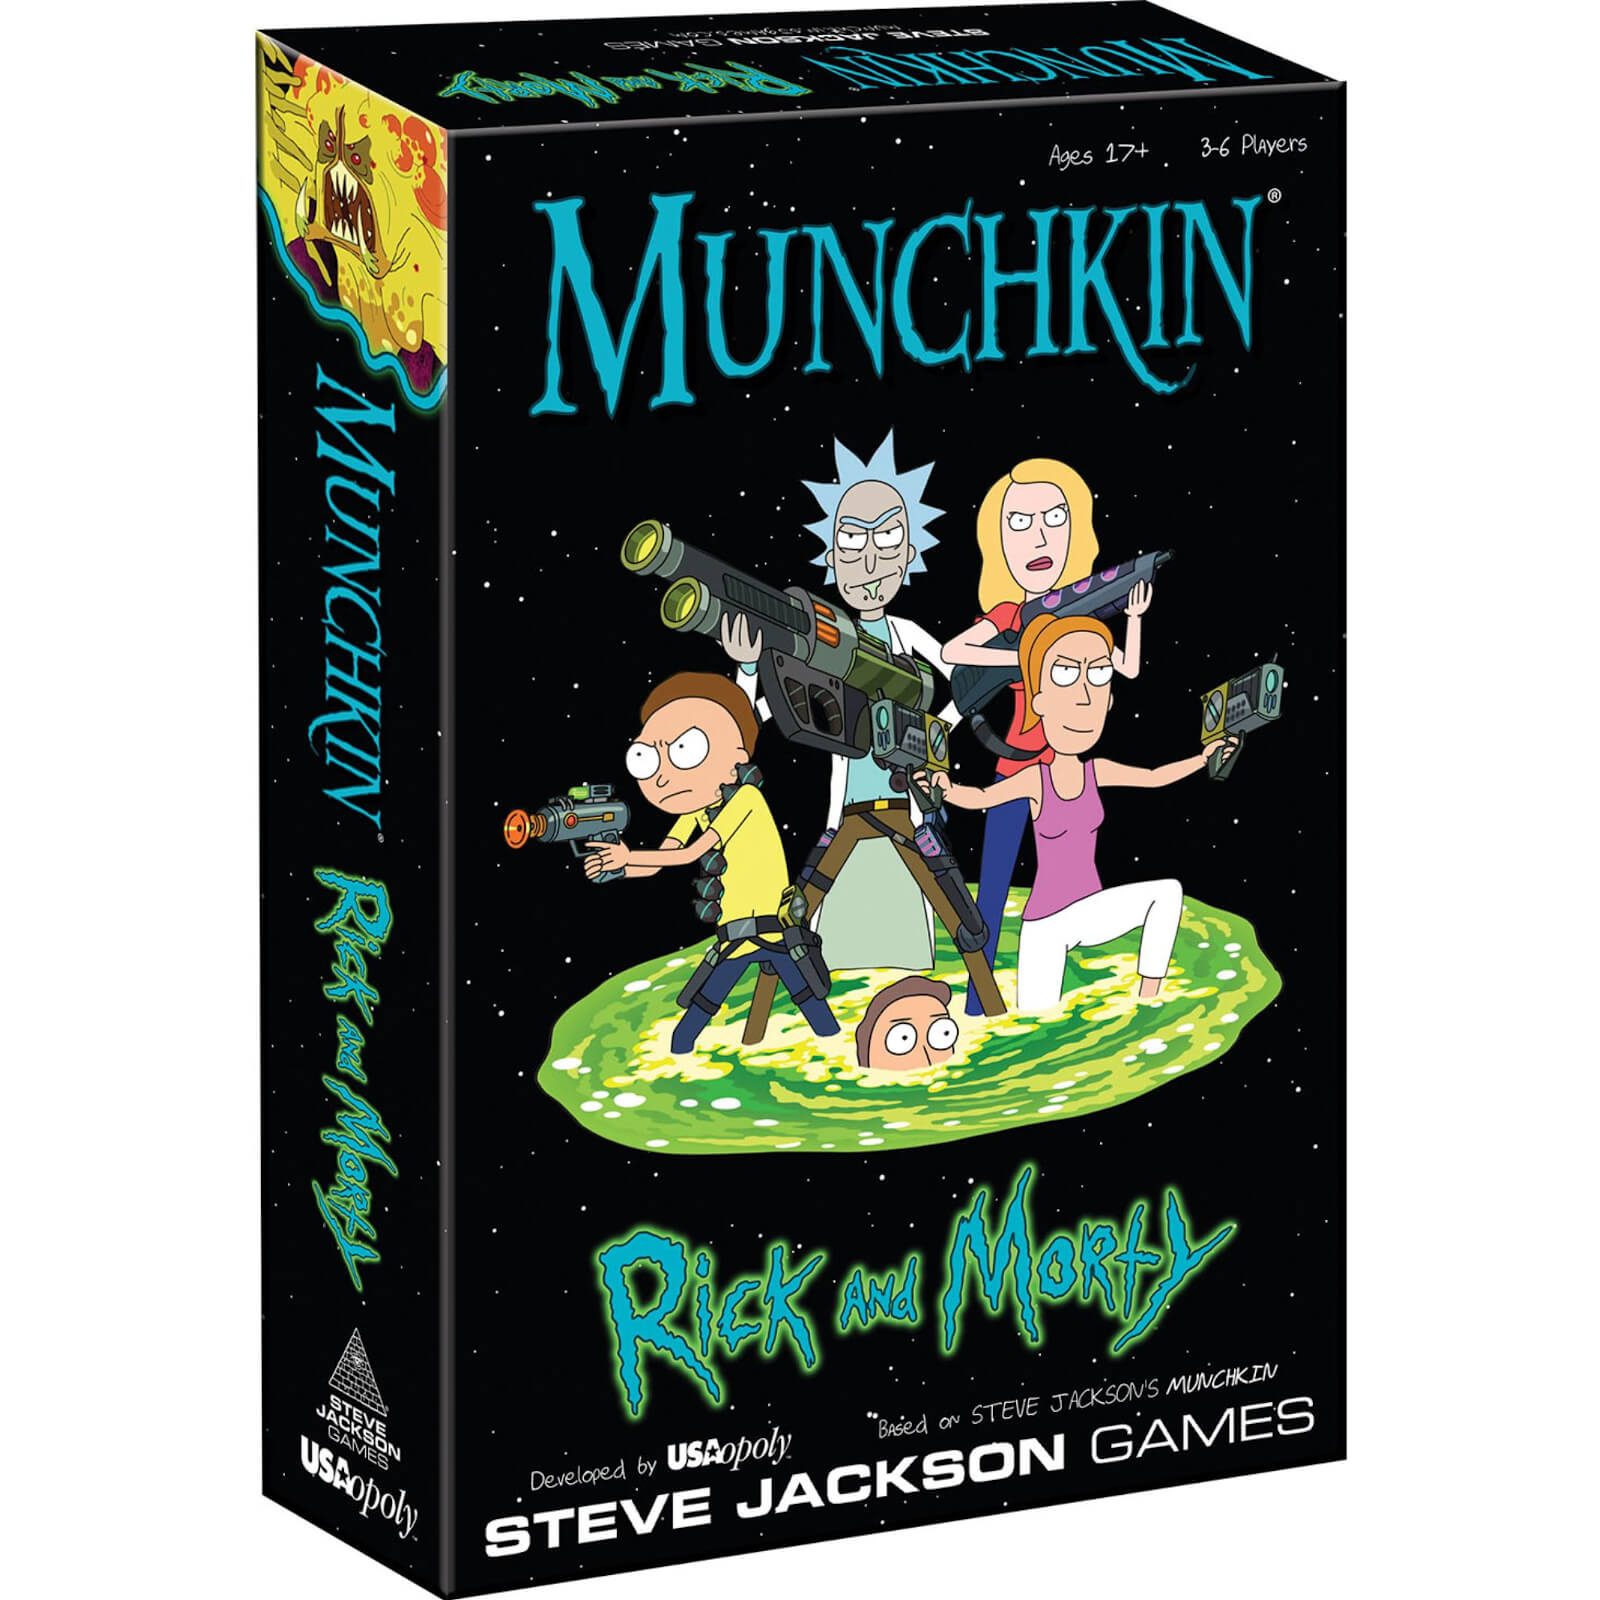 Image of Munchkin: Rick and Morty Card Game